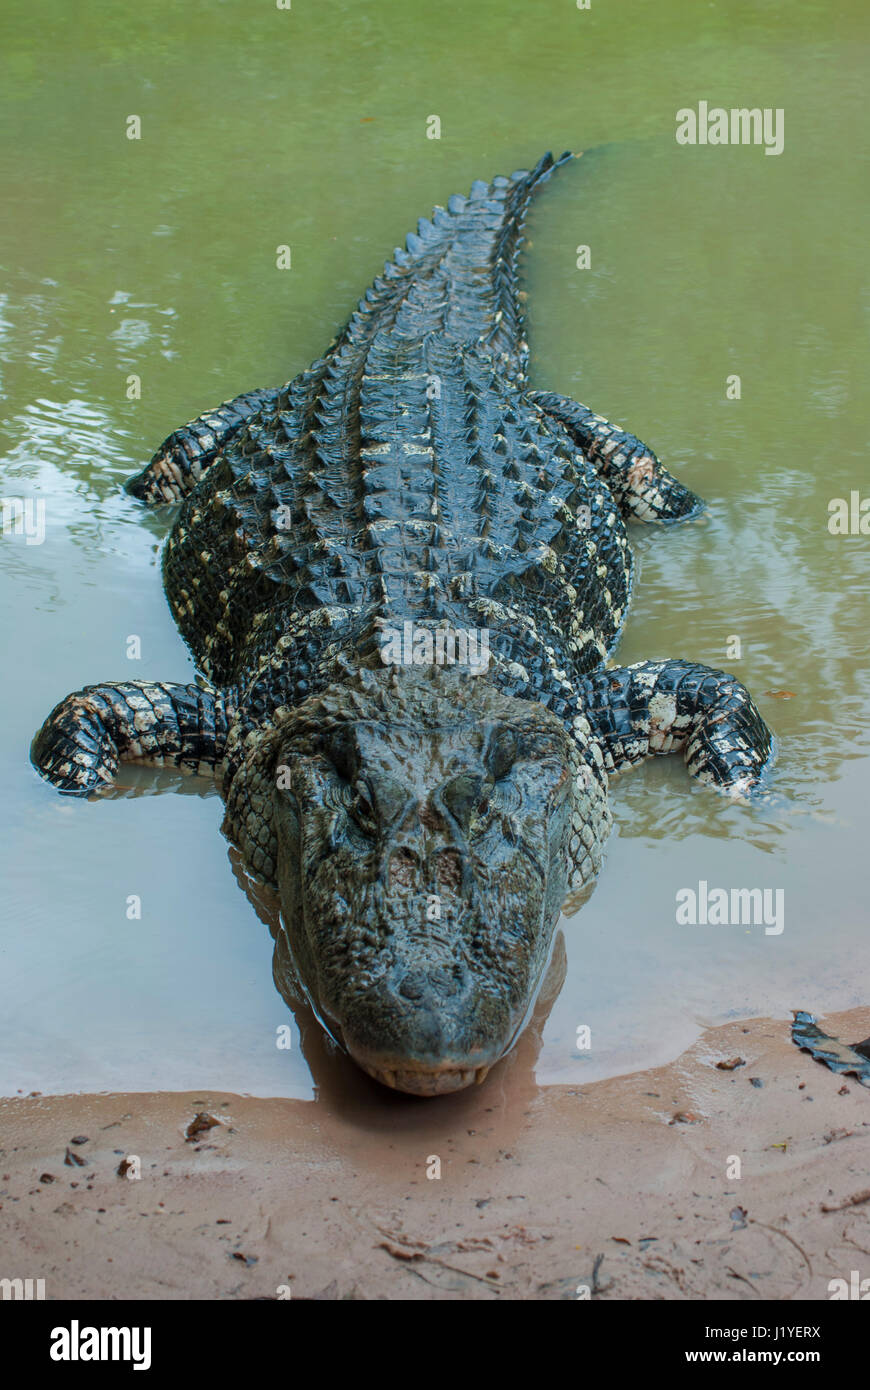 Black caiman (Melanosuchus niger) in the water at the river edge - Stock Image